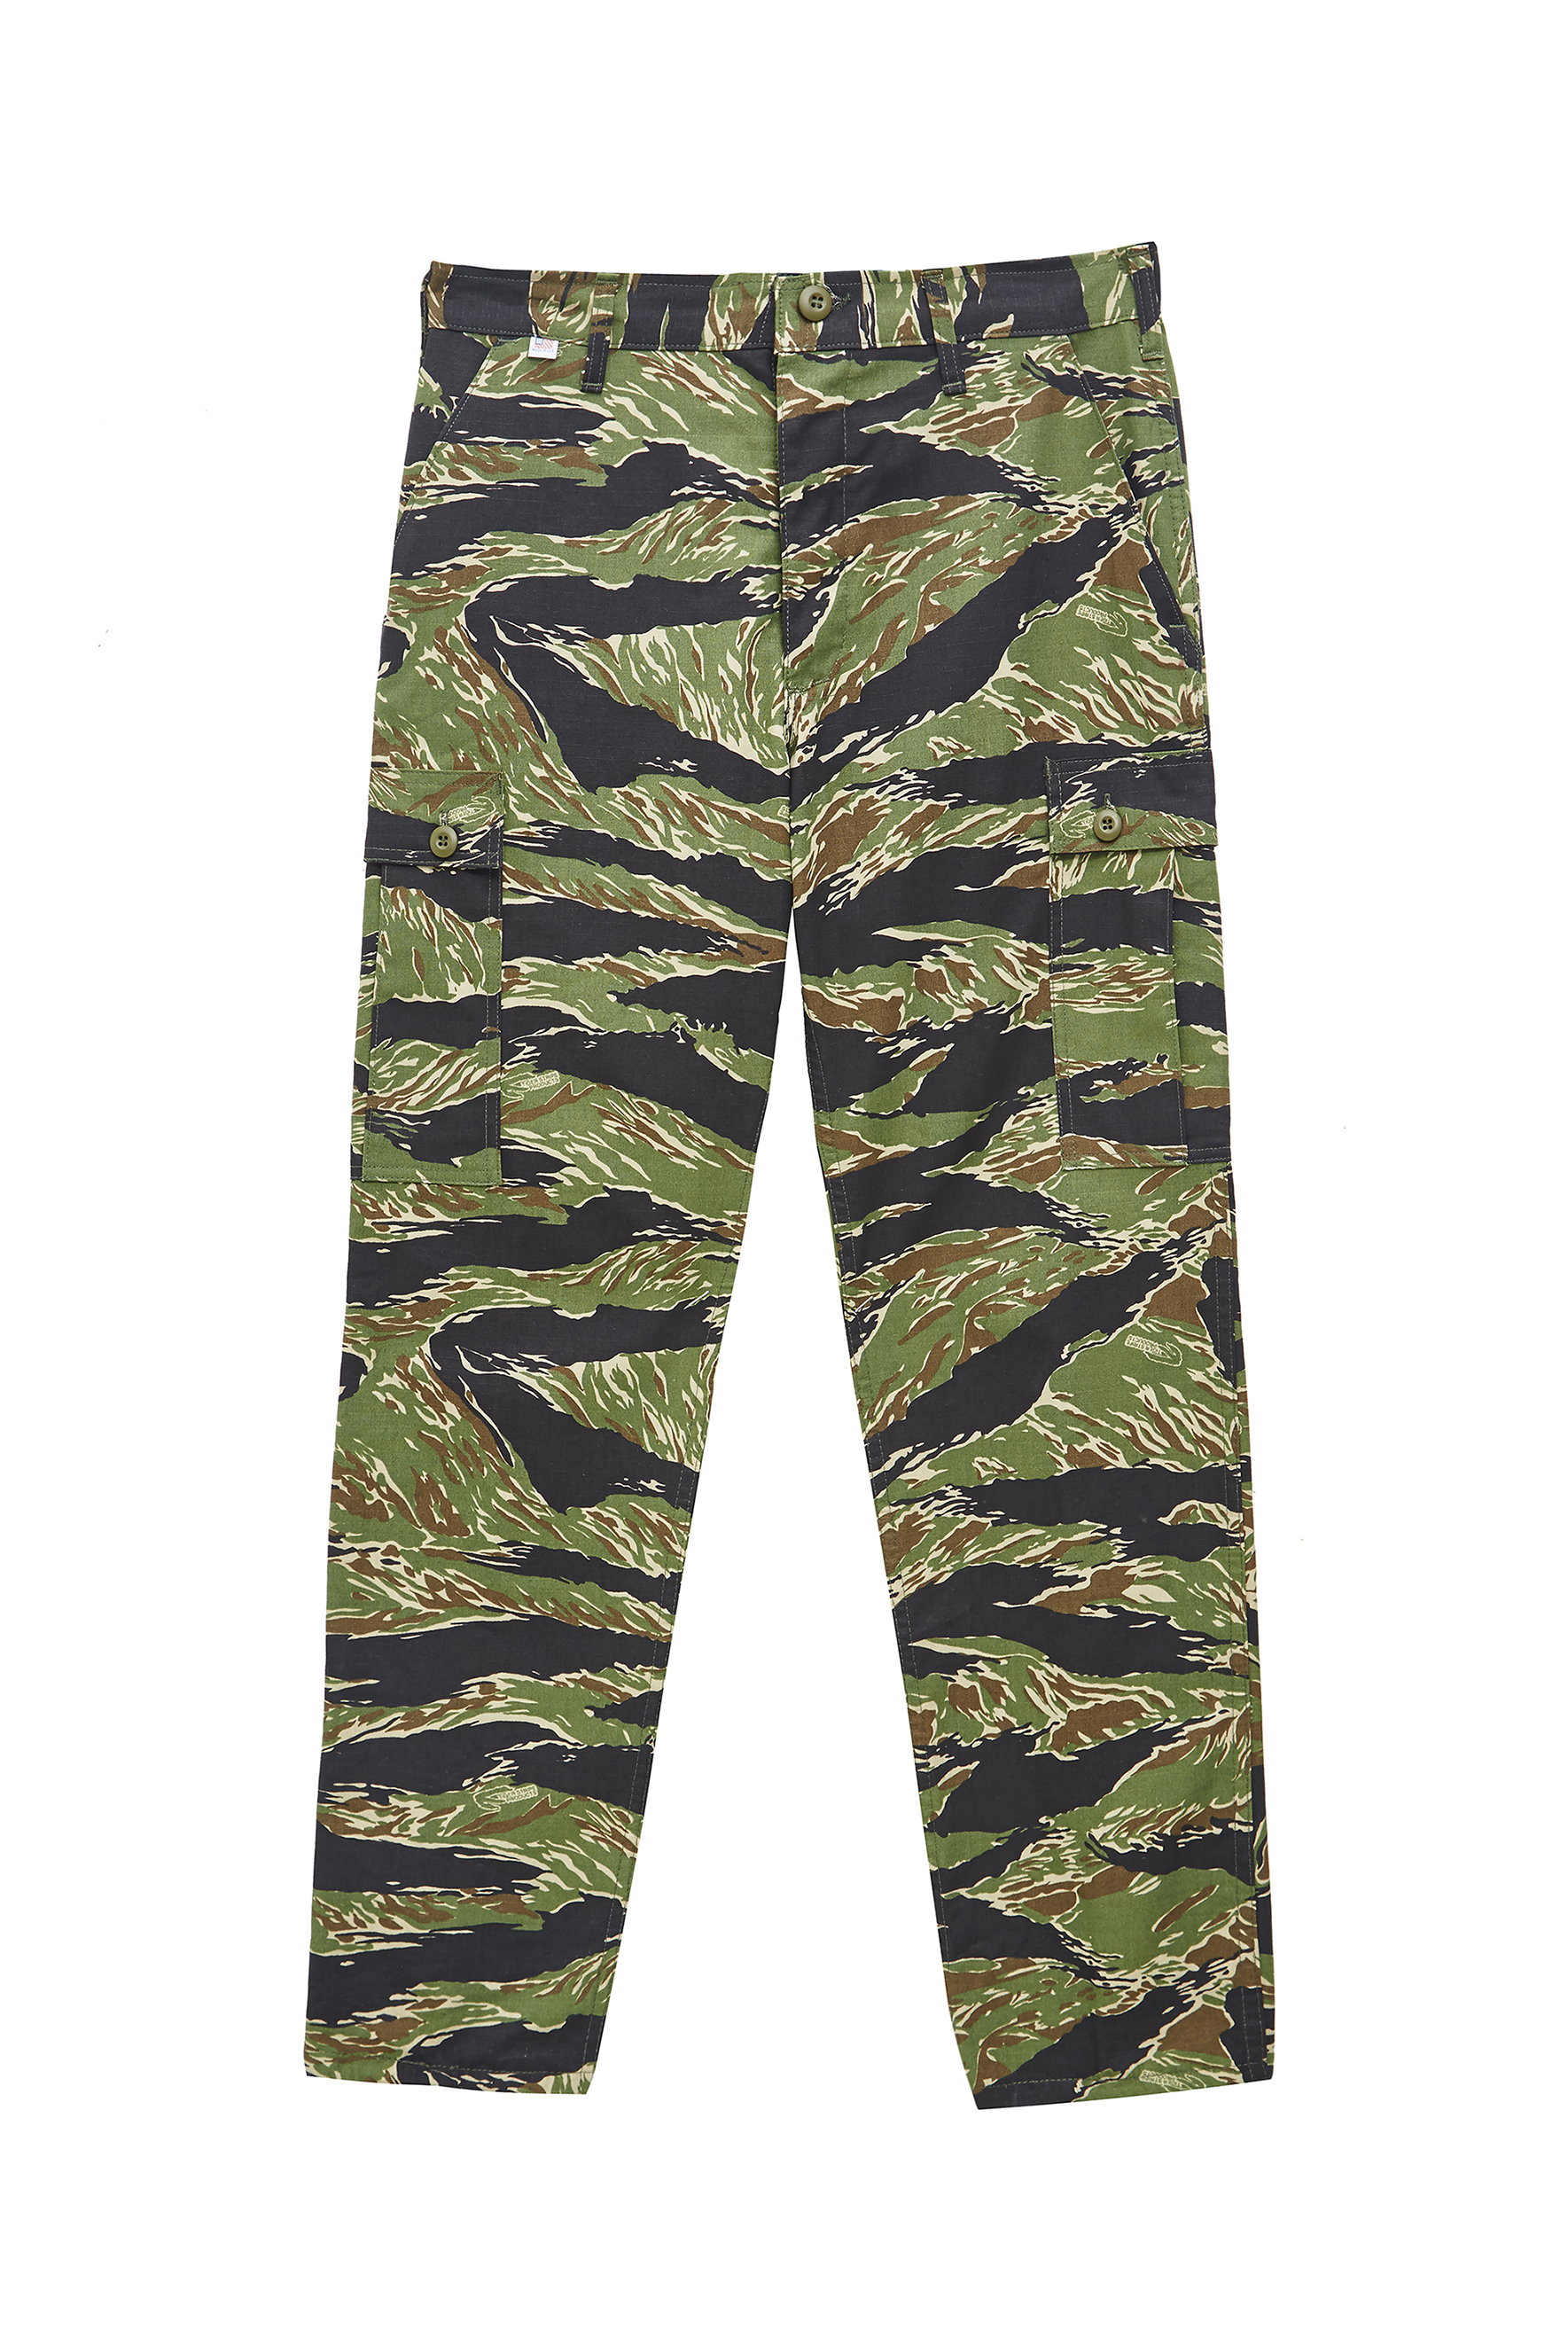 Stan Ray trousers at Urban Outfitters £65 or 90 euros (3)